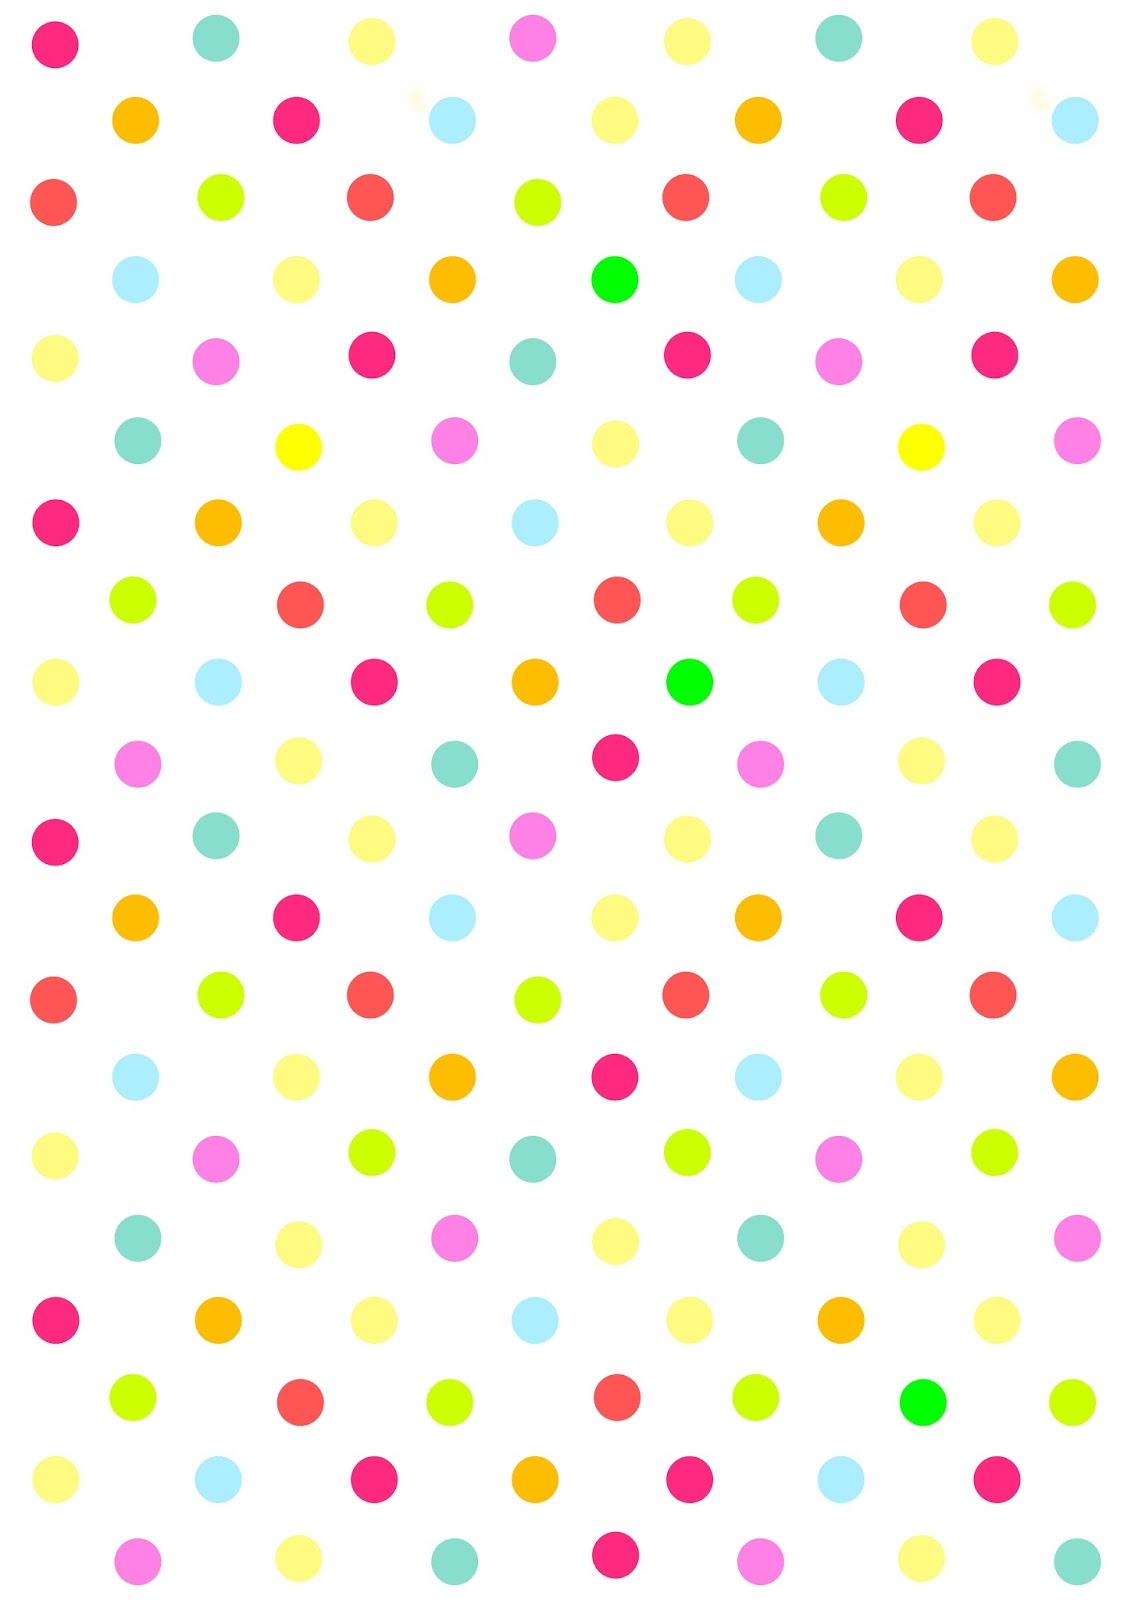 Feuille A4 Couleur Free Digital Multicolored Polka Dot Scrapbooking Paper